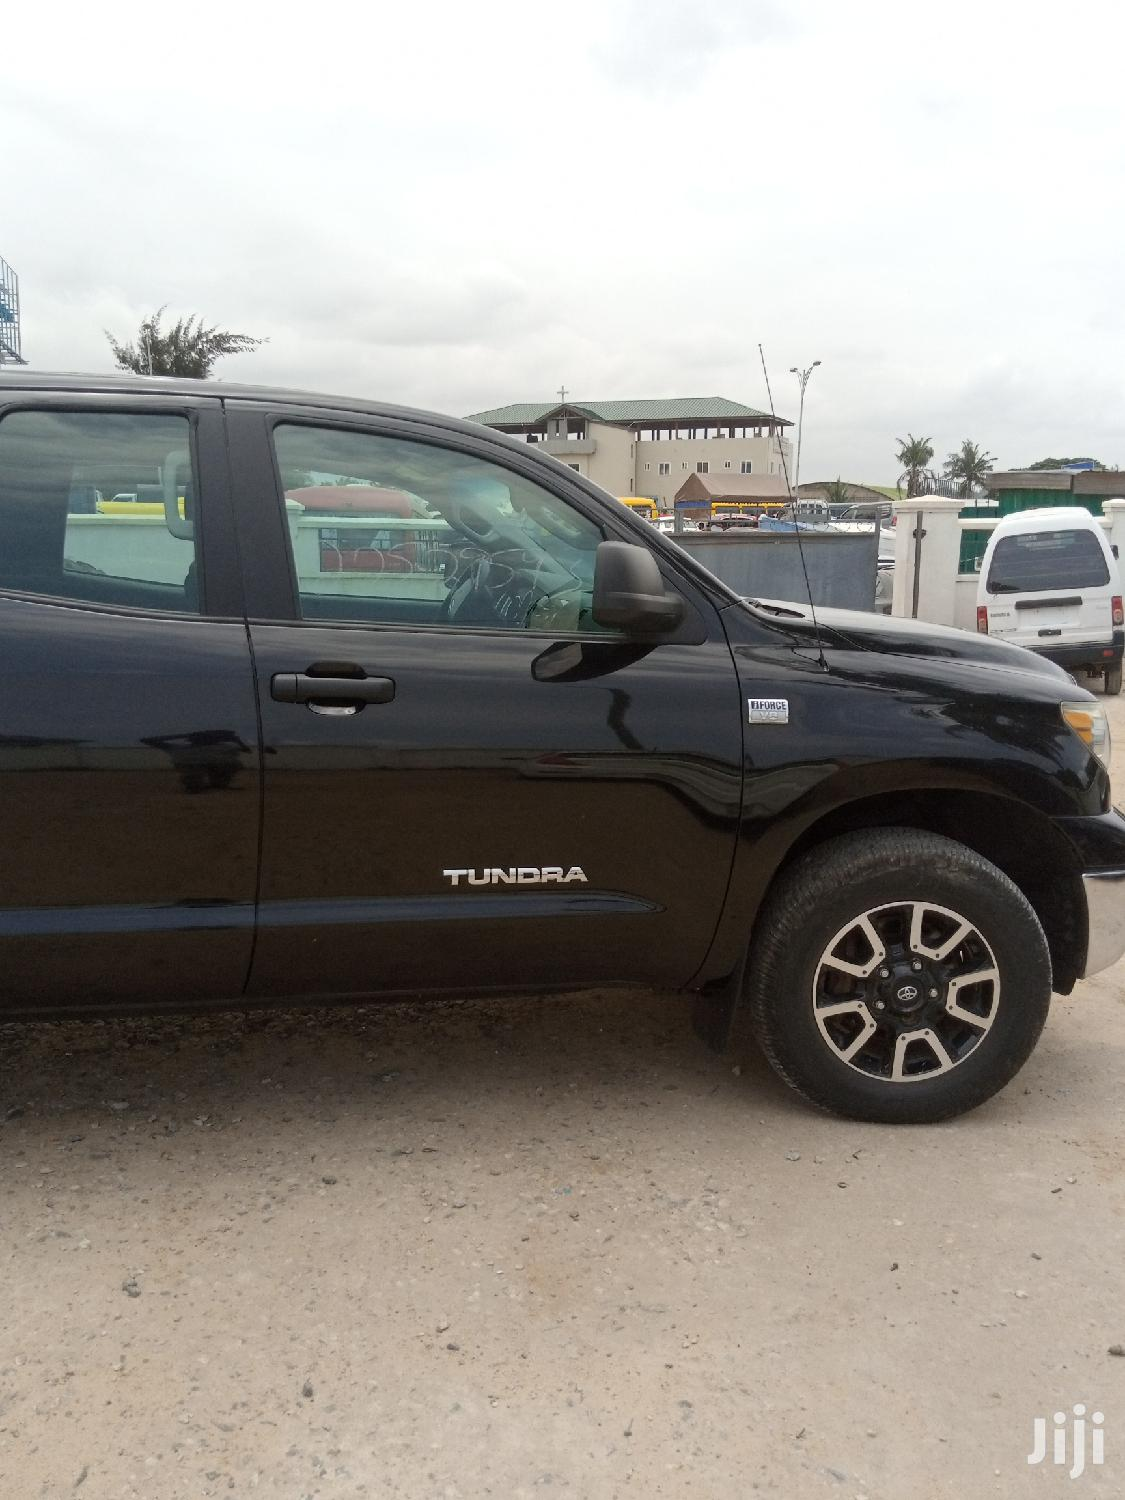 Toyota Tundra 2008 | Cars for sale in Achimota, Greater Accra, Ghana